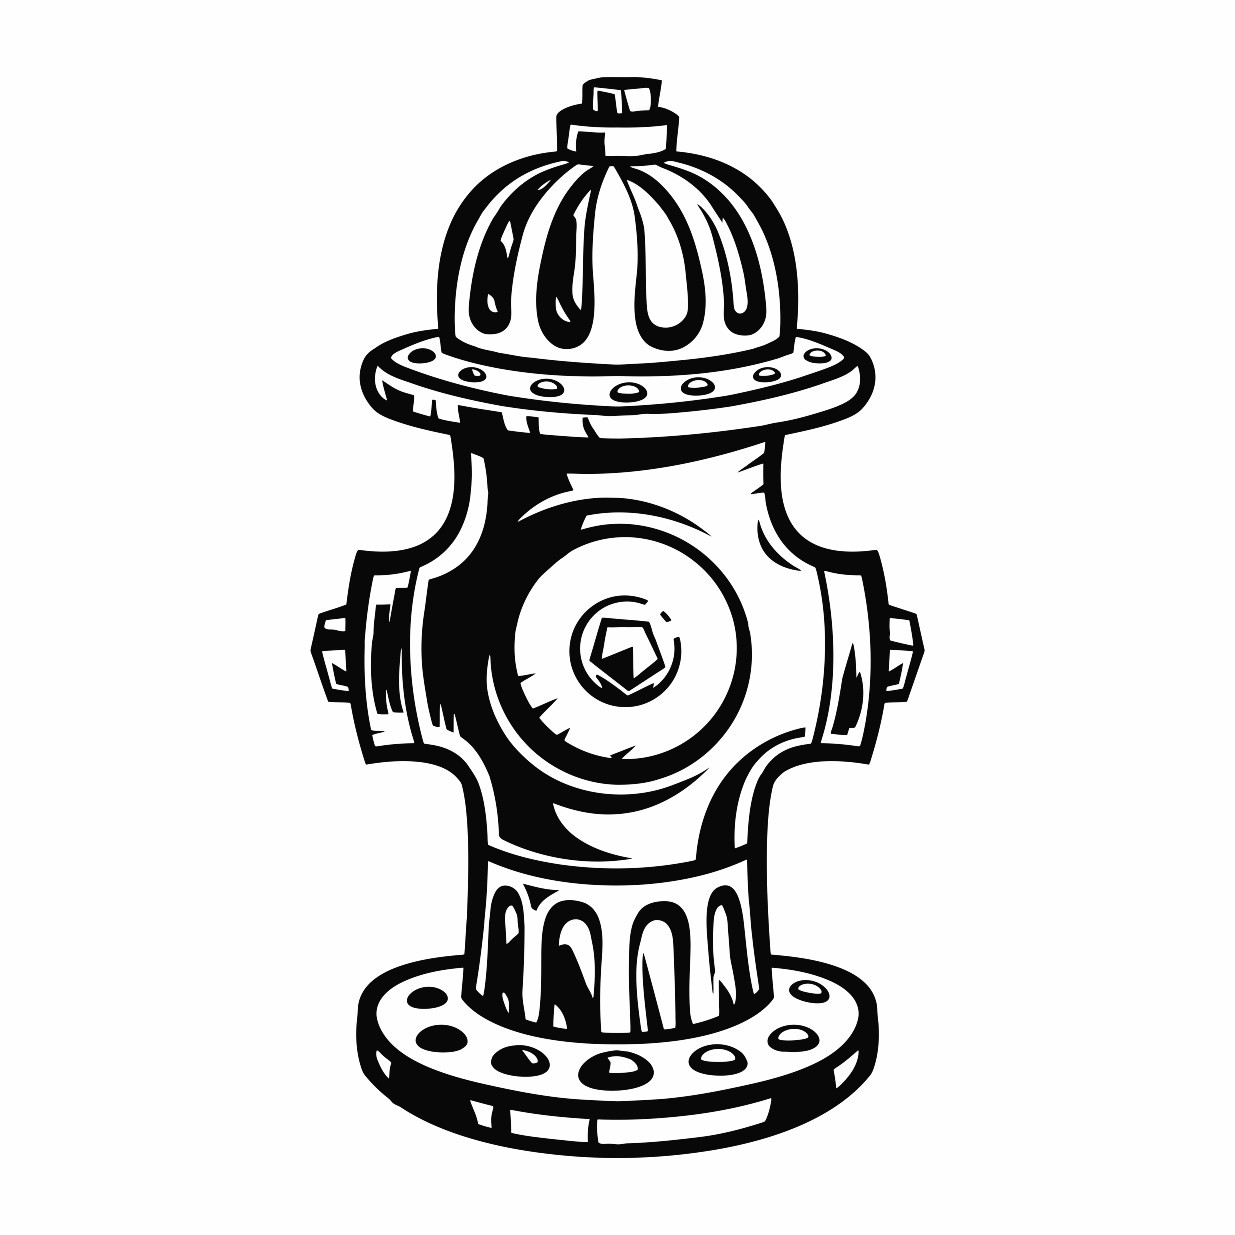 fire hydrant coloring page fire hydrant coloring page coloring home fire hydrant page coloring